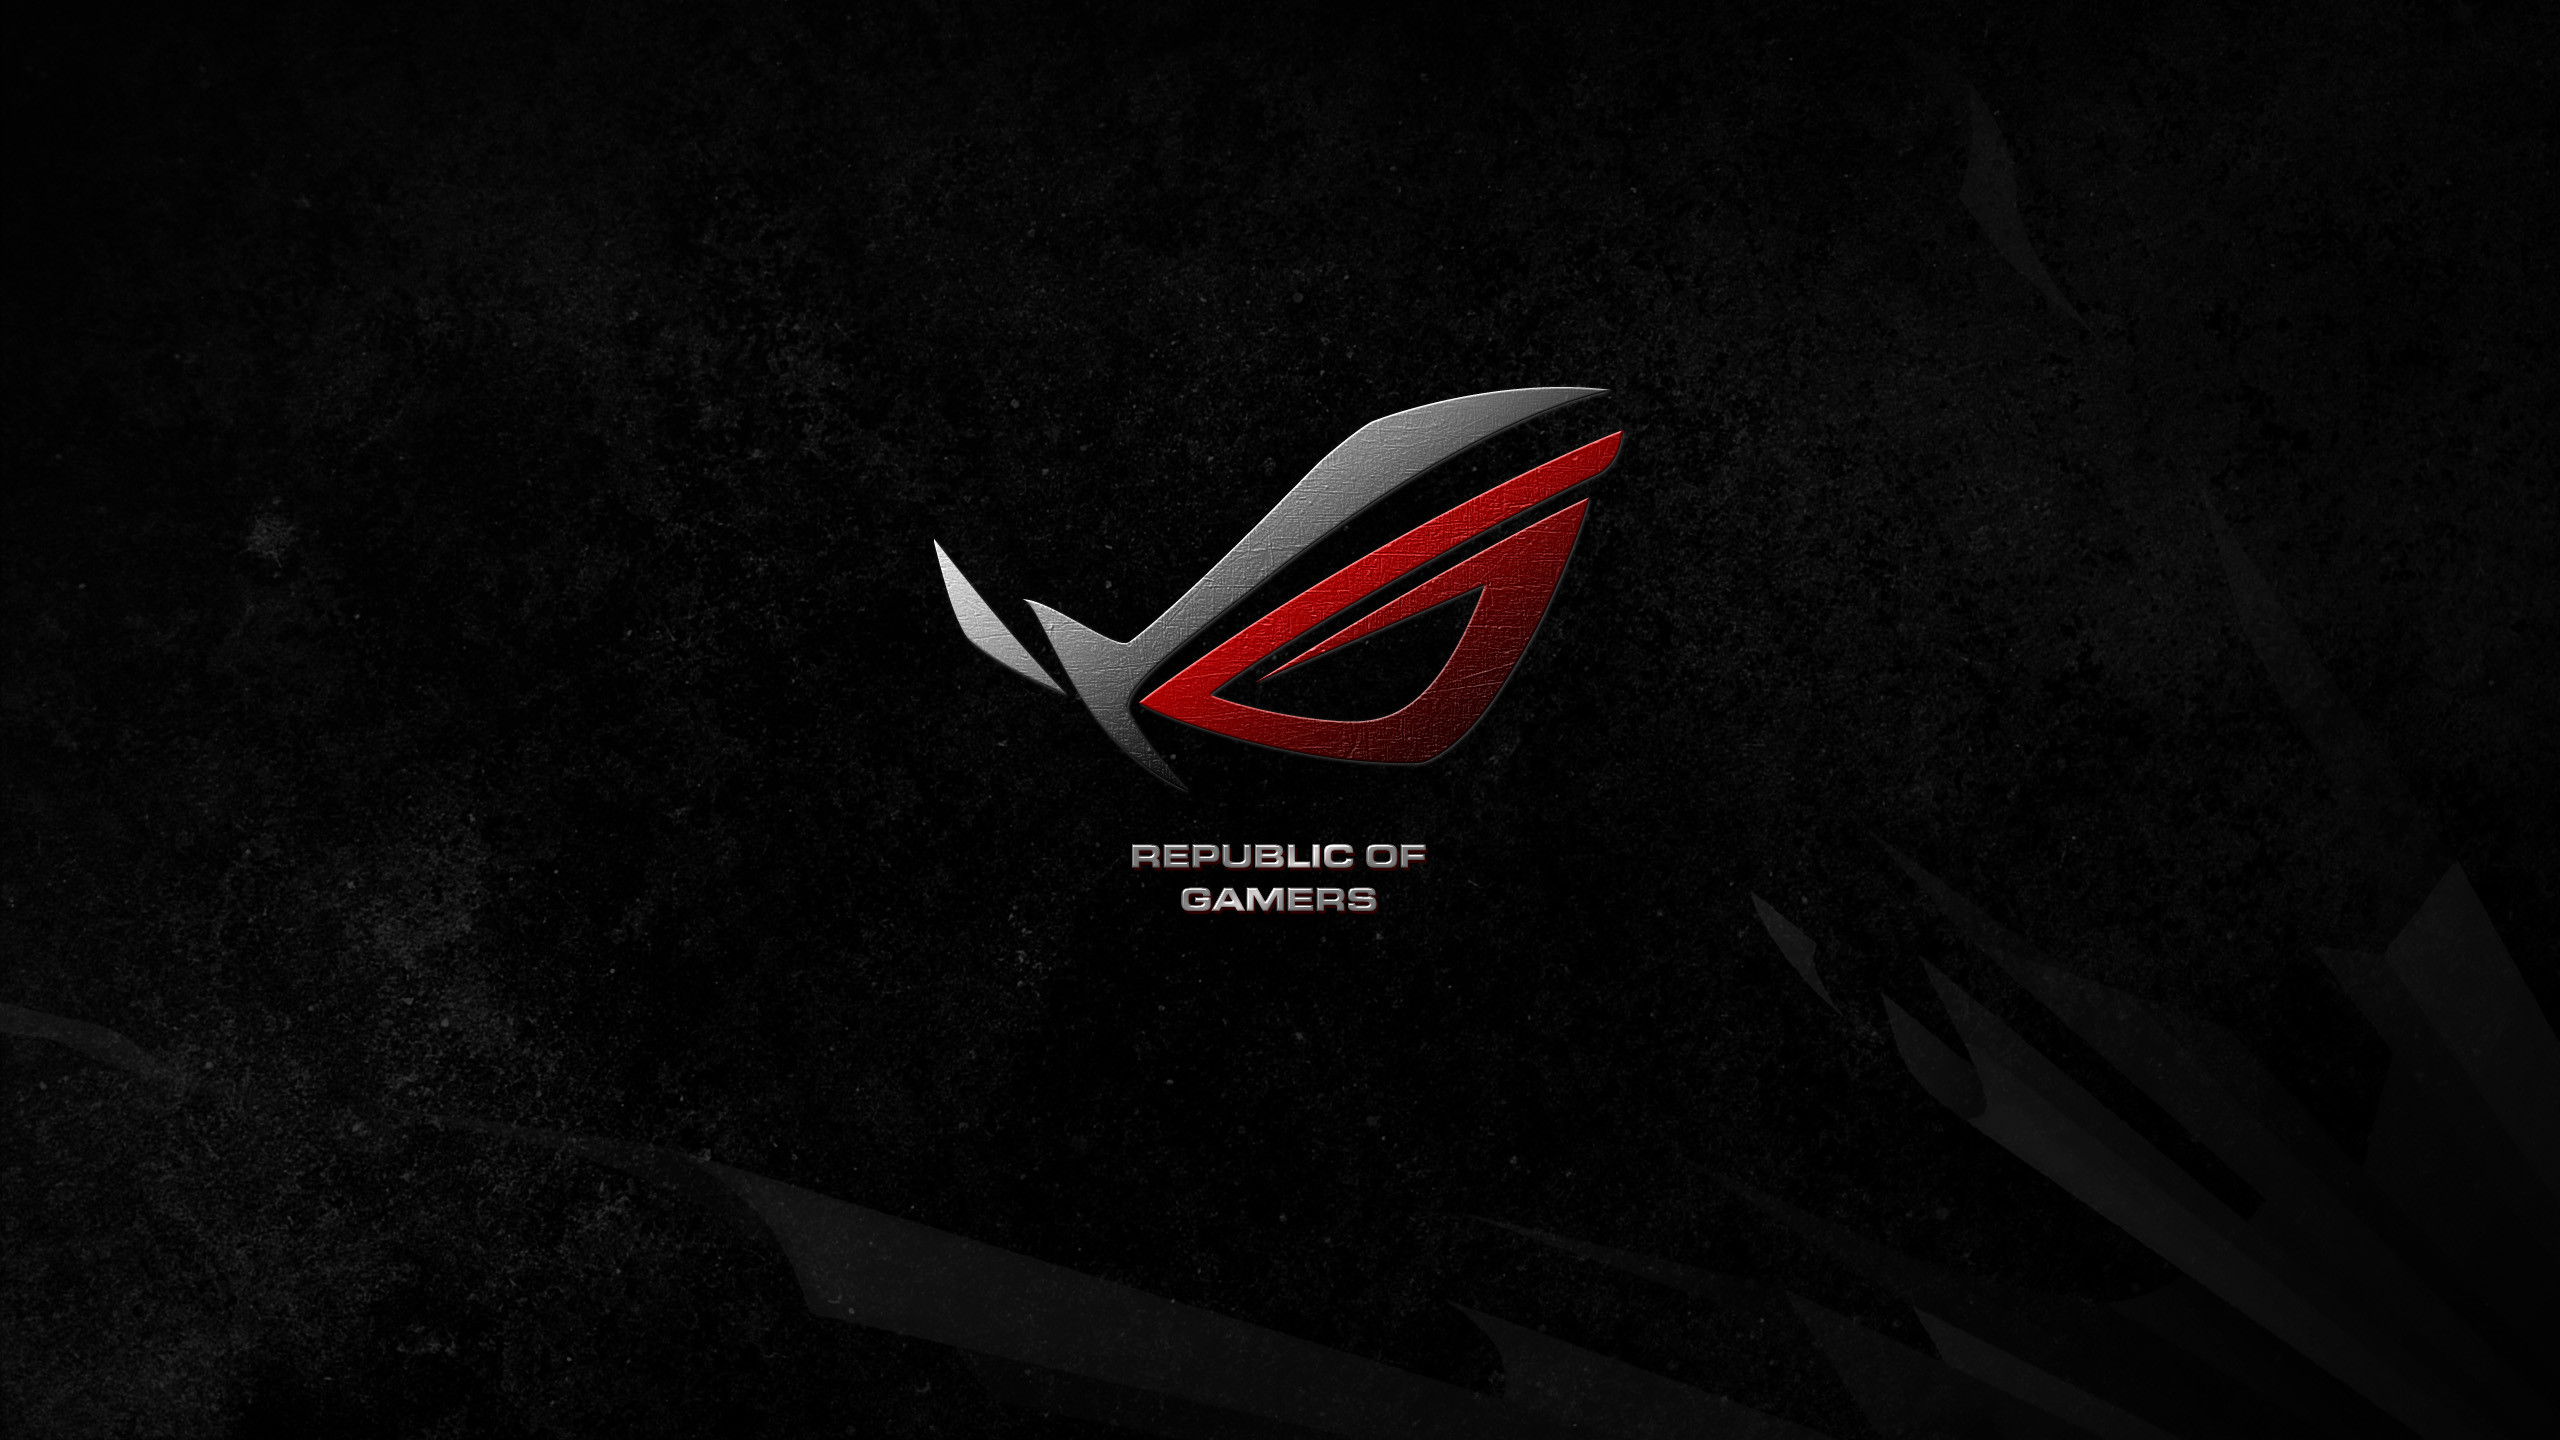 2013 ROG Desktop Wallpaper Competition! [until 30th April] [Archive] – ASUS  Republic of Gamers [ROG] | The Choice of Champions – Overclocking, PC Gaming,  …